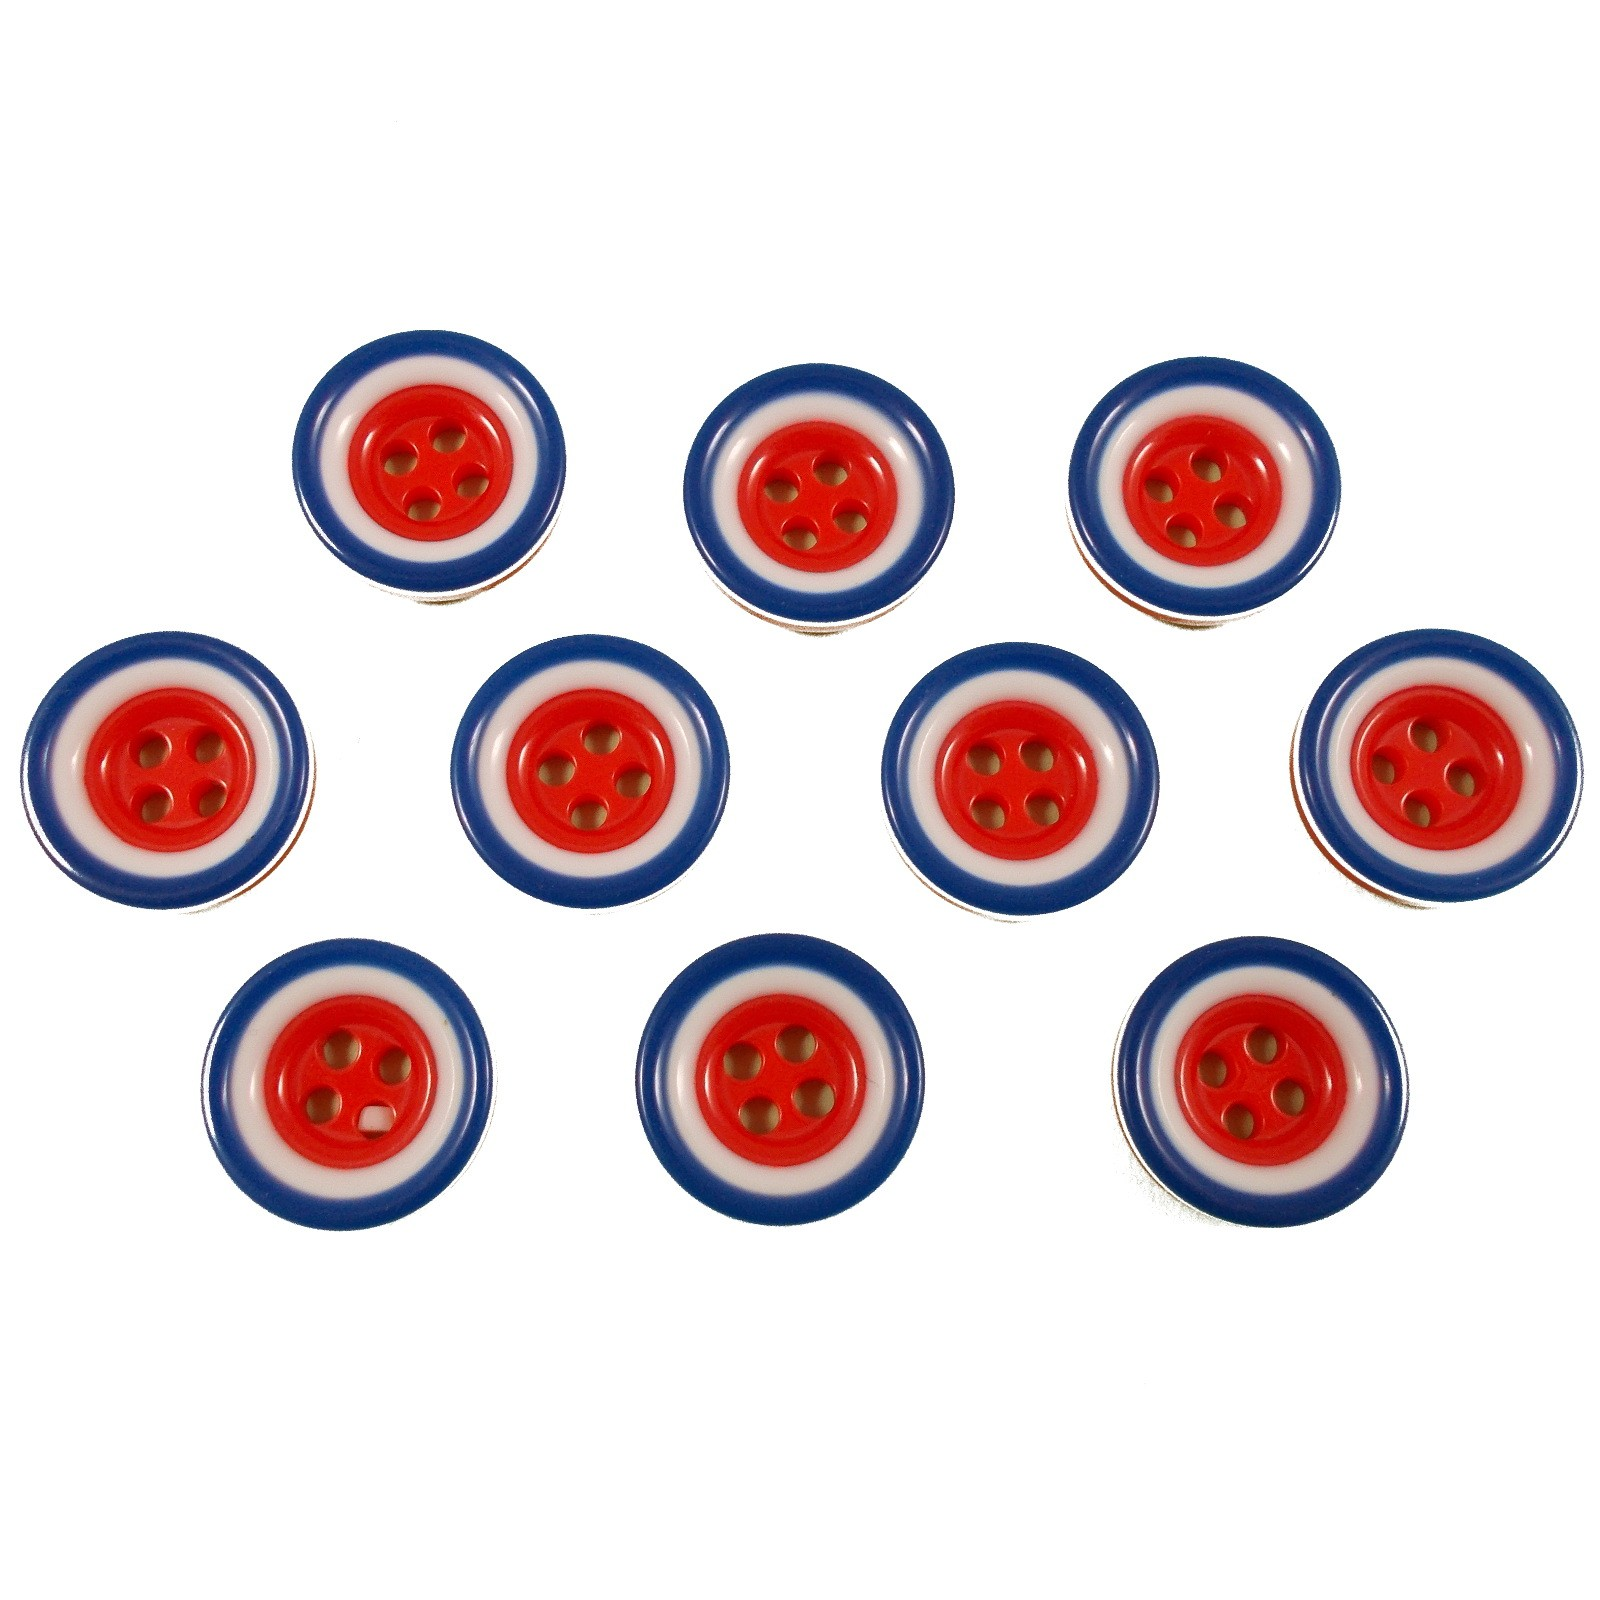 Mod Target Style Round Plastic Buttons 15mm Pack of 10